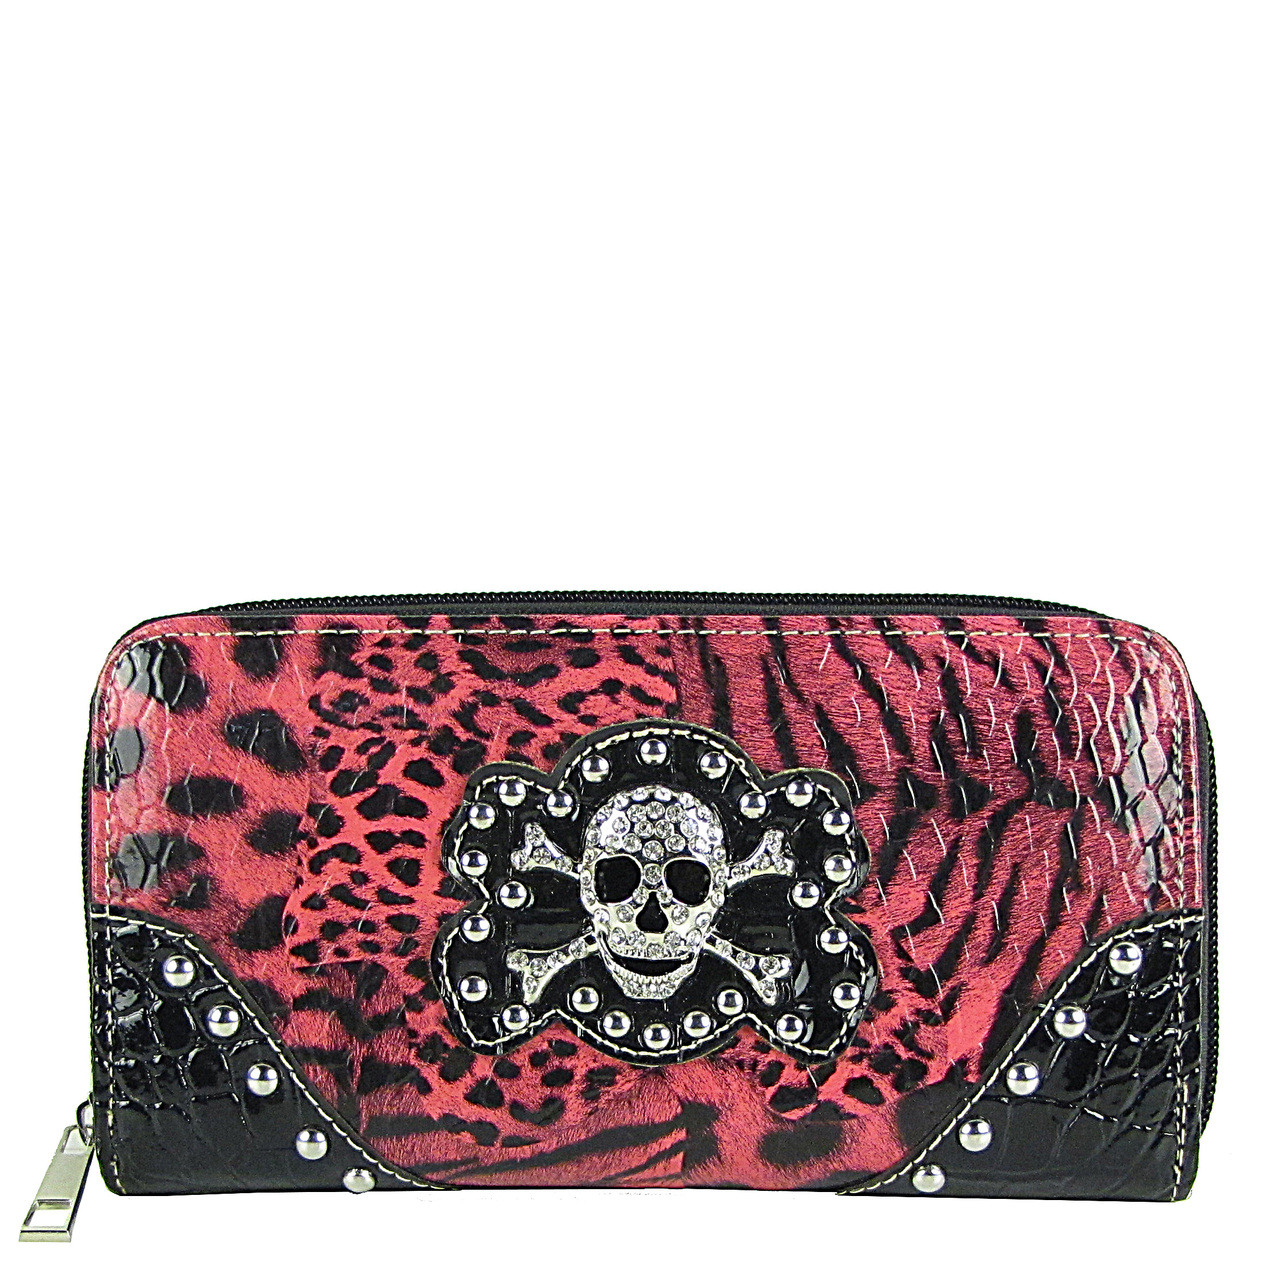 HOT PINK STUDDED LEAPORD SKULL LOOK ZIPPER WALLET CB3-1203HPK